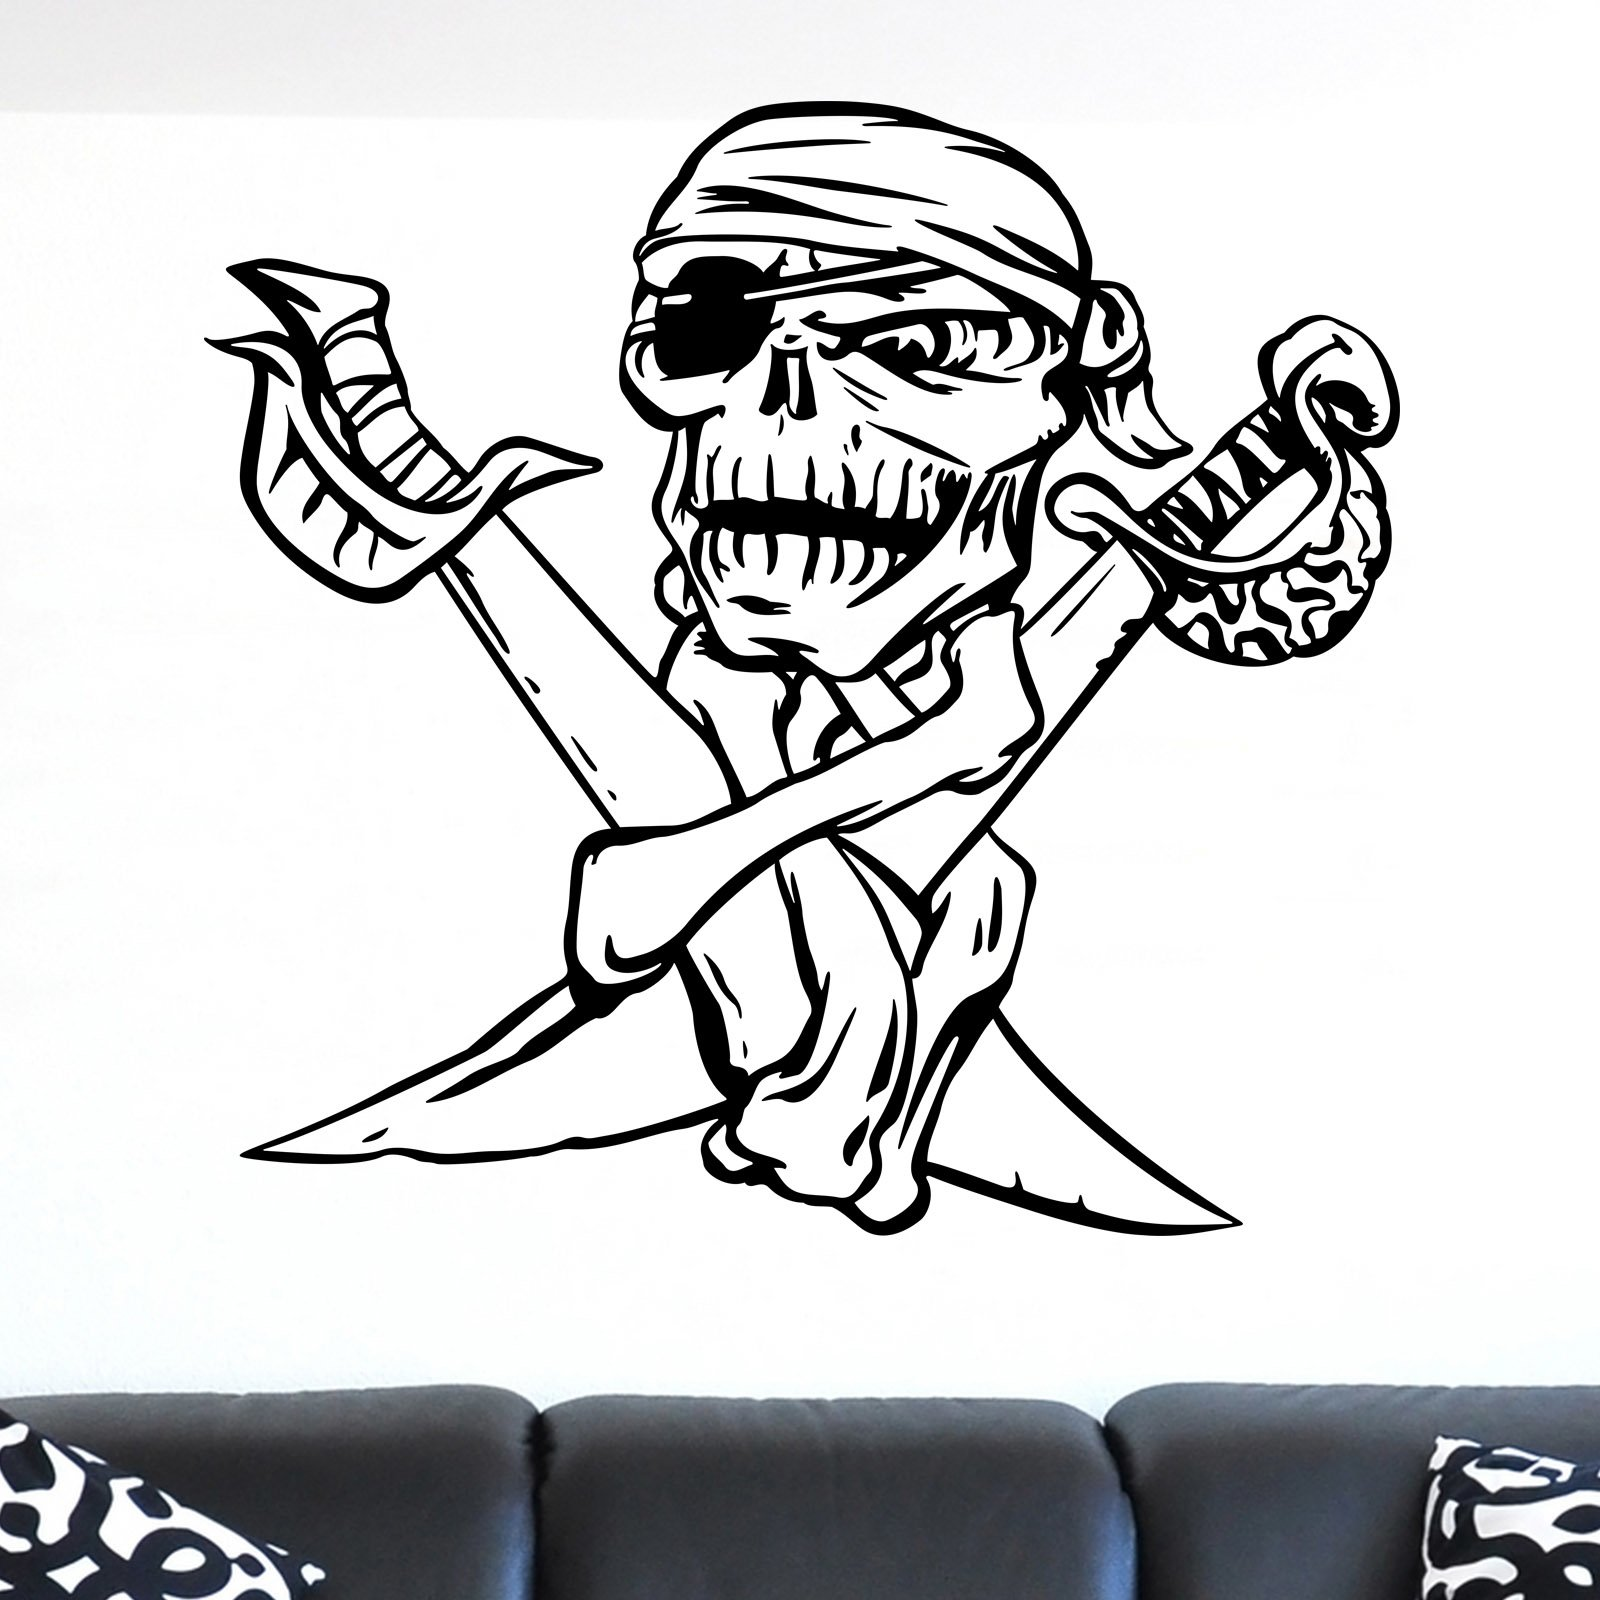 Cool skull and cross swords pirate wall sticker world of wall cool skull and cross swords pirate wall sticker decal a amipublicfo Gallery